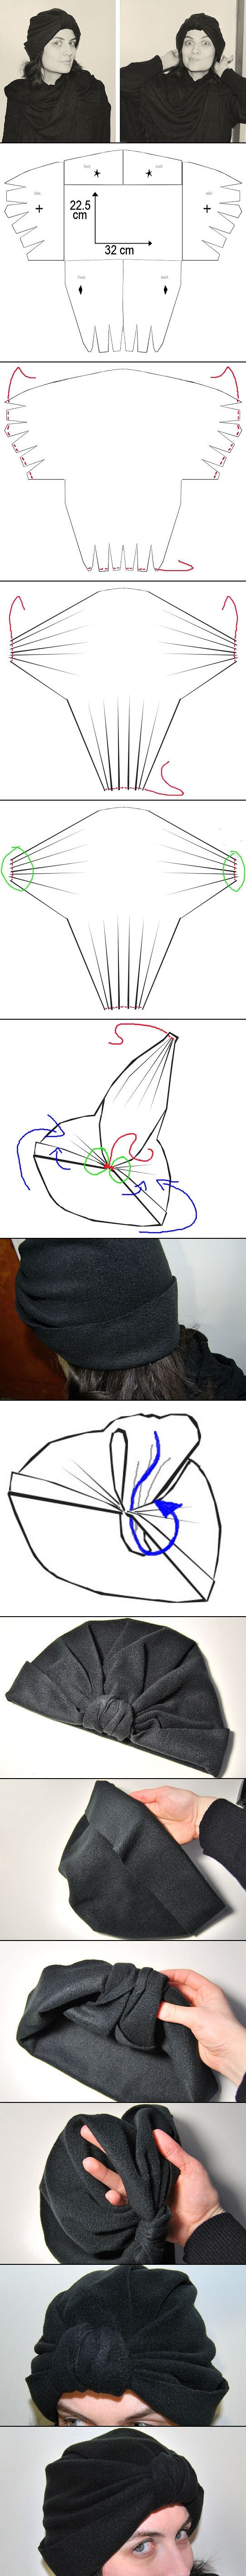 http://ragstocouture.com/turban-hat-diy-printable-pattern/